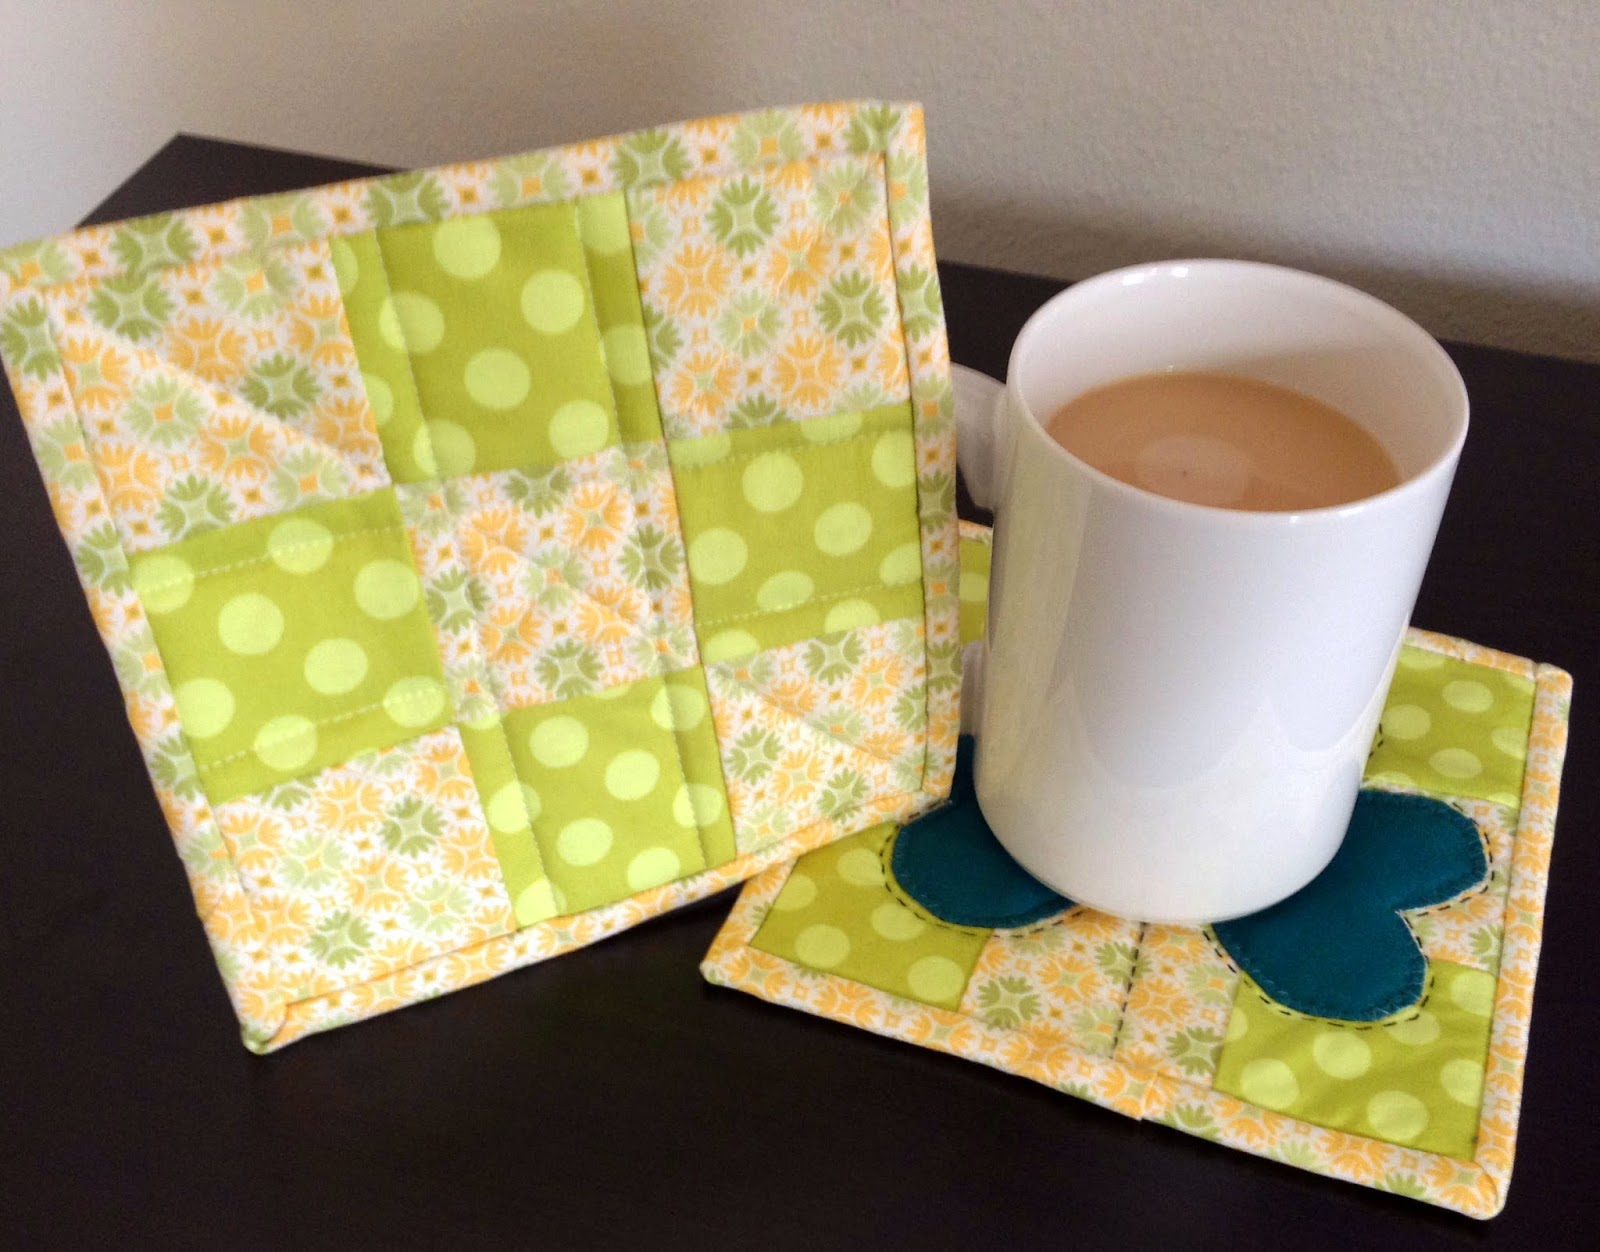 Quiltsmart Mug Rug, A Quick Project for St. Patty's Day